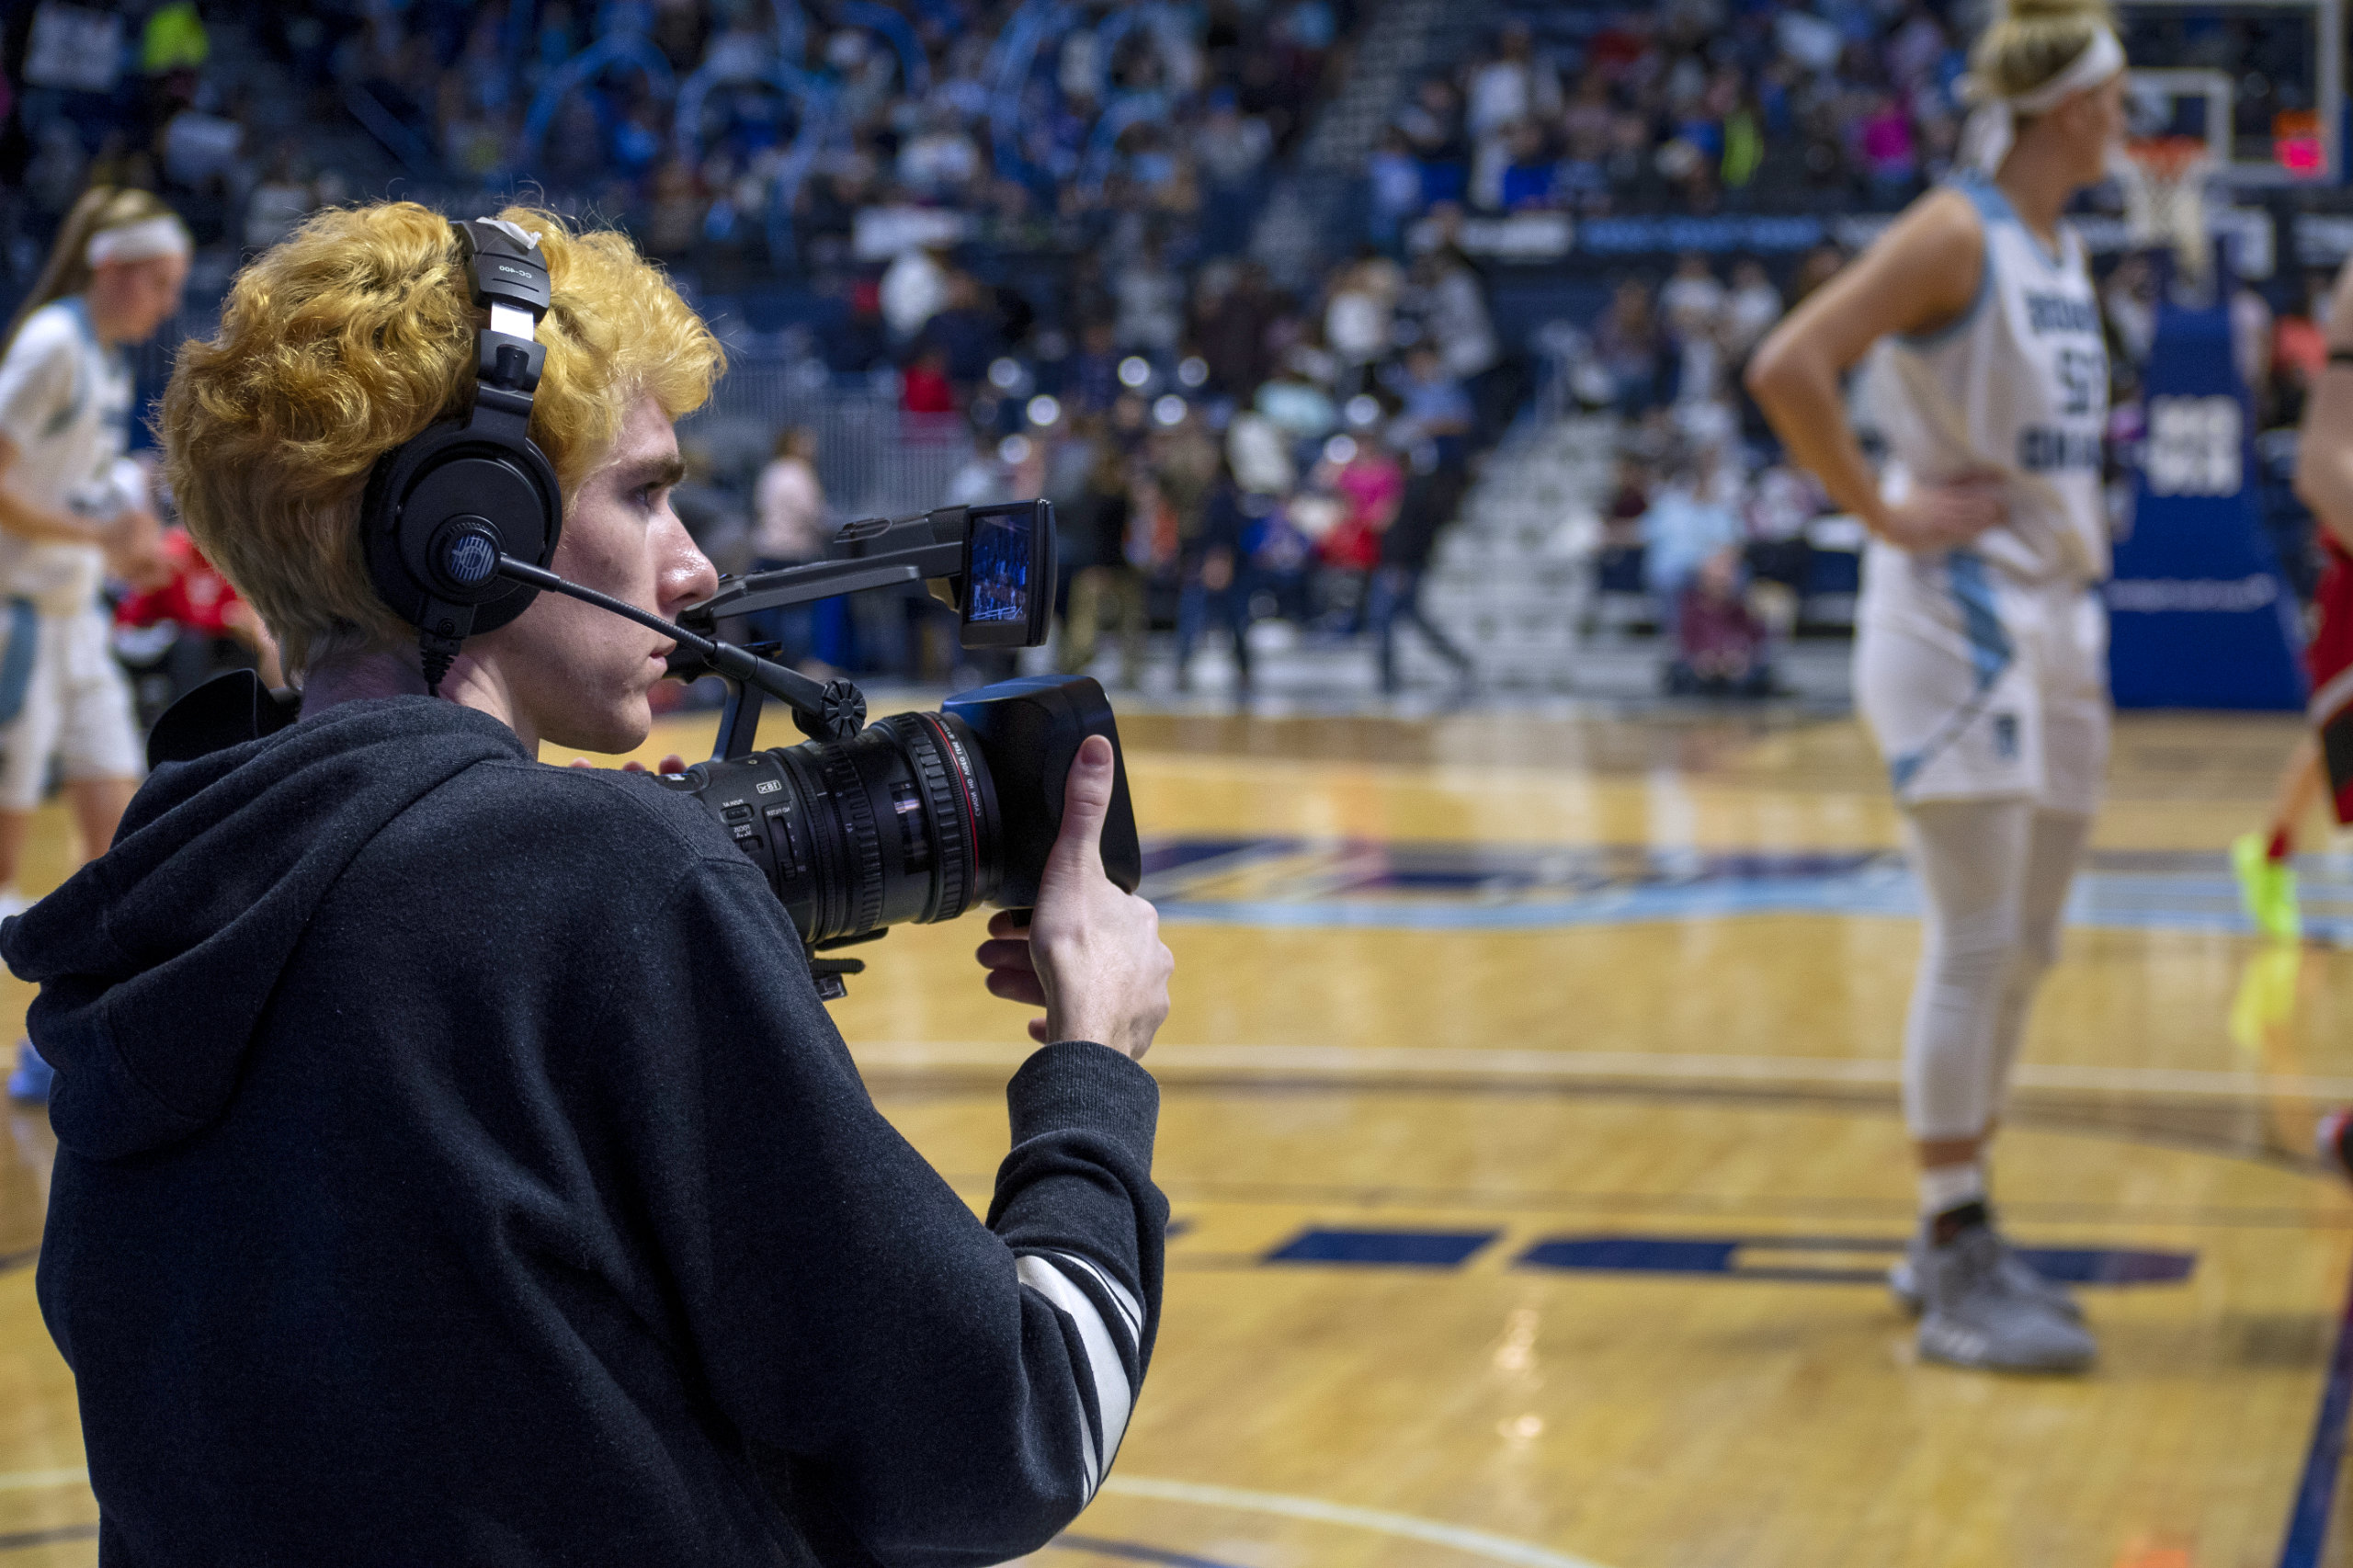 A student with video equipment films a basketball game.